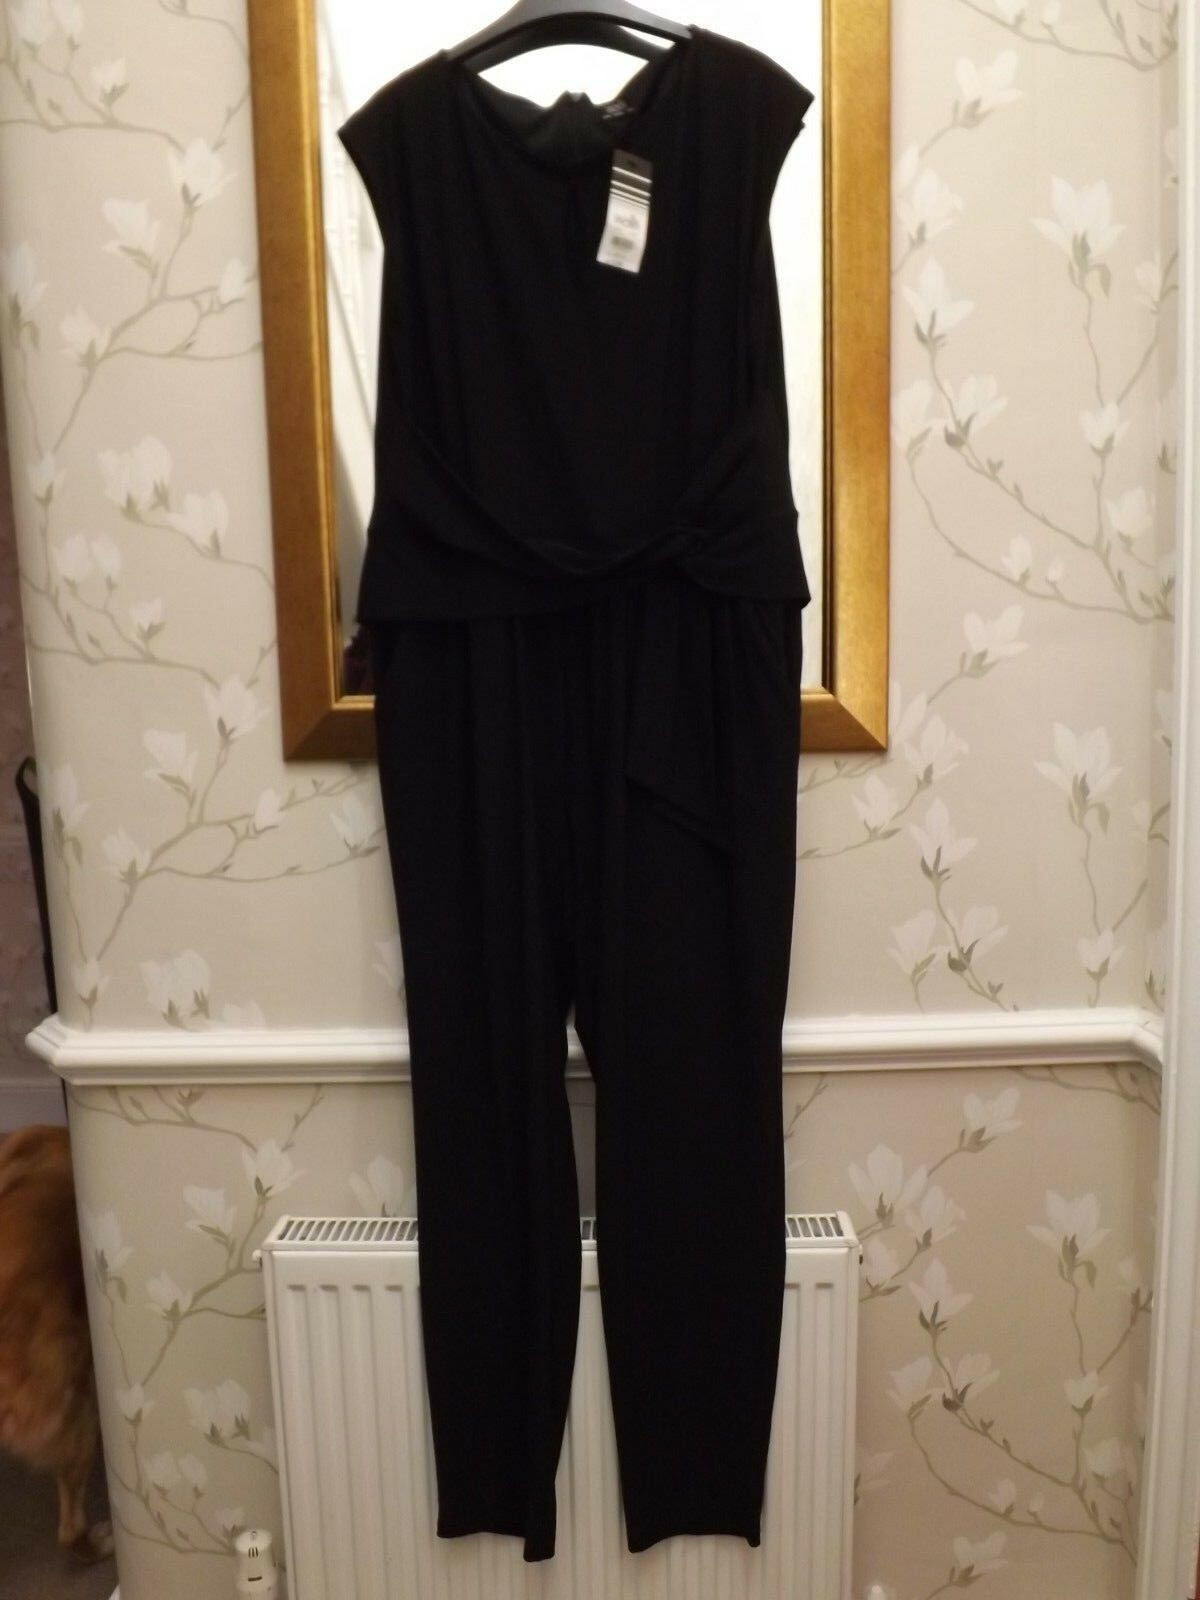 Ladies jumpsuit, size 16 from Wallis BNWT